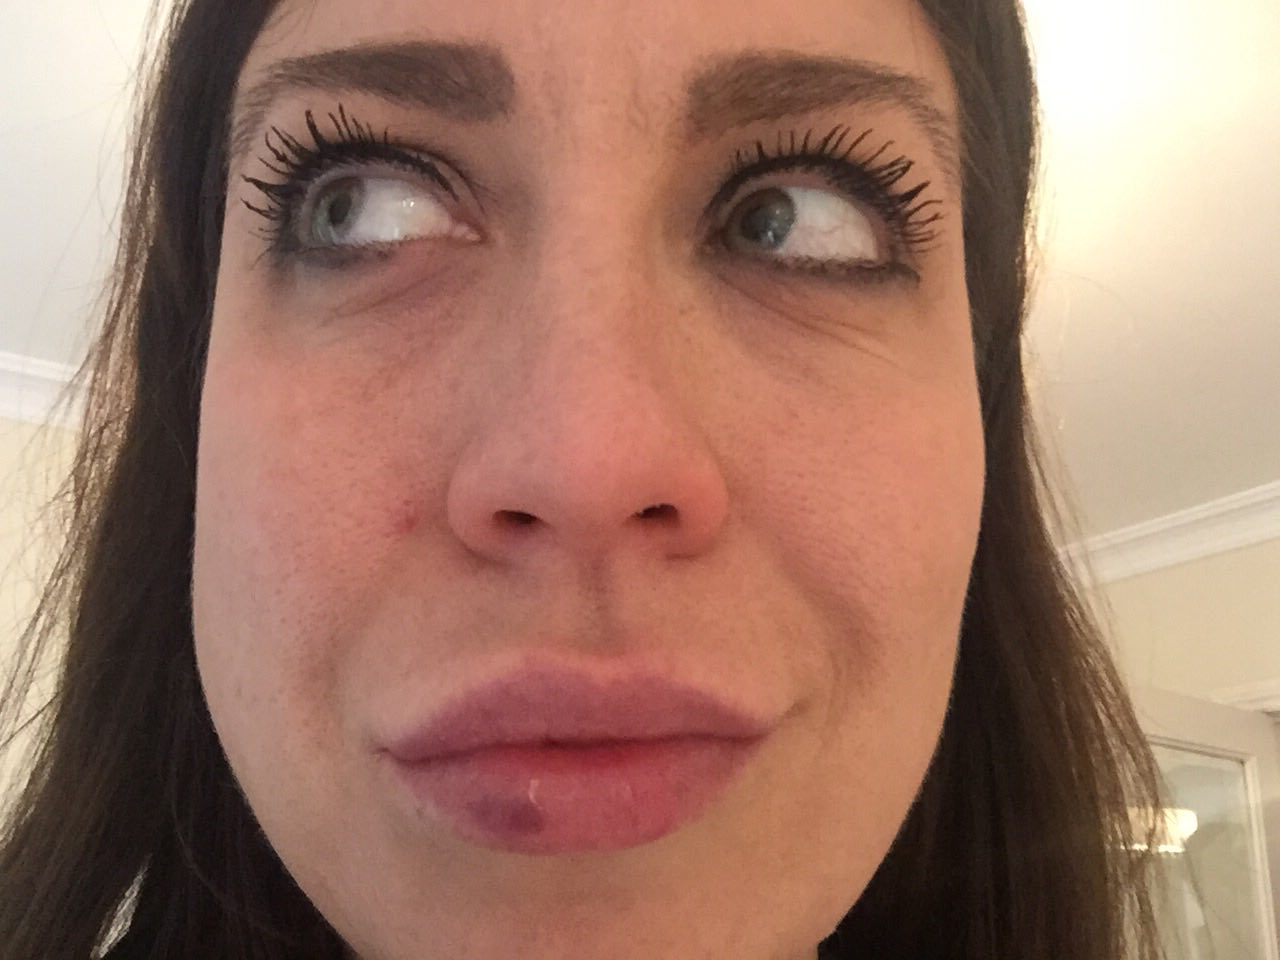 I got my lips enhanced with filler for the first time and